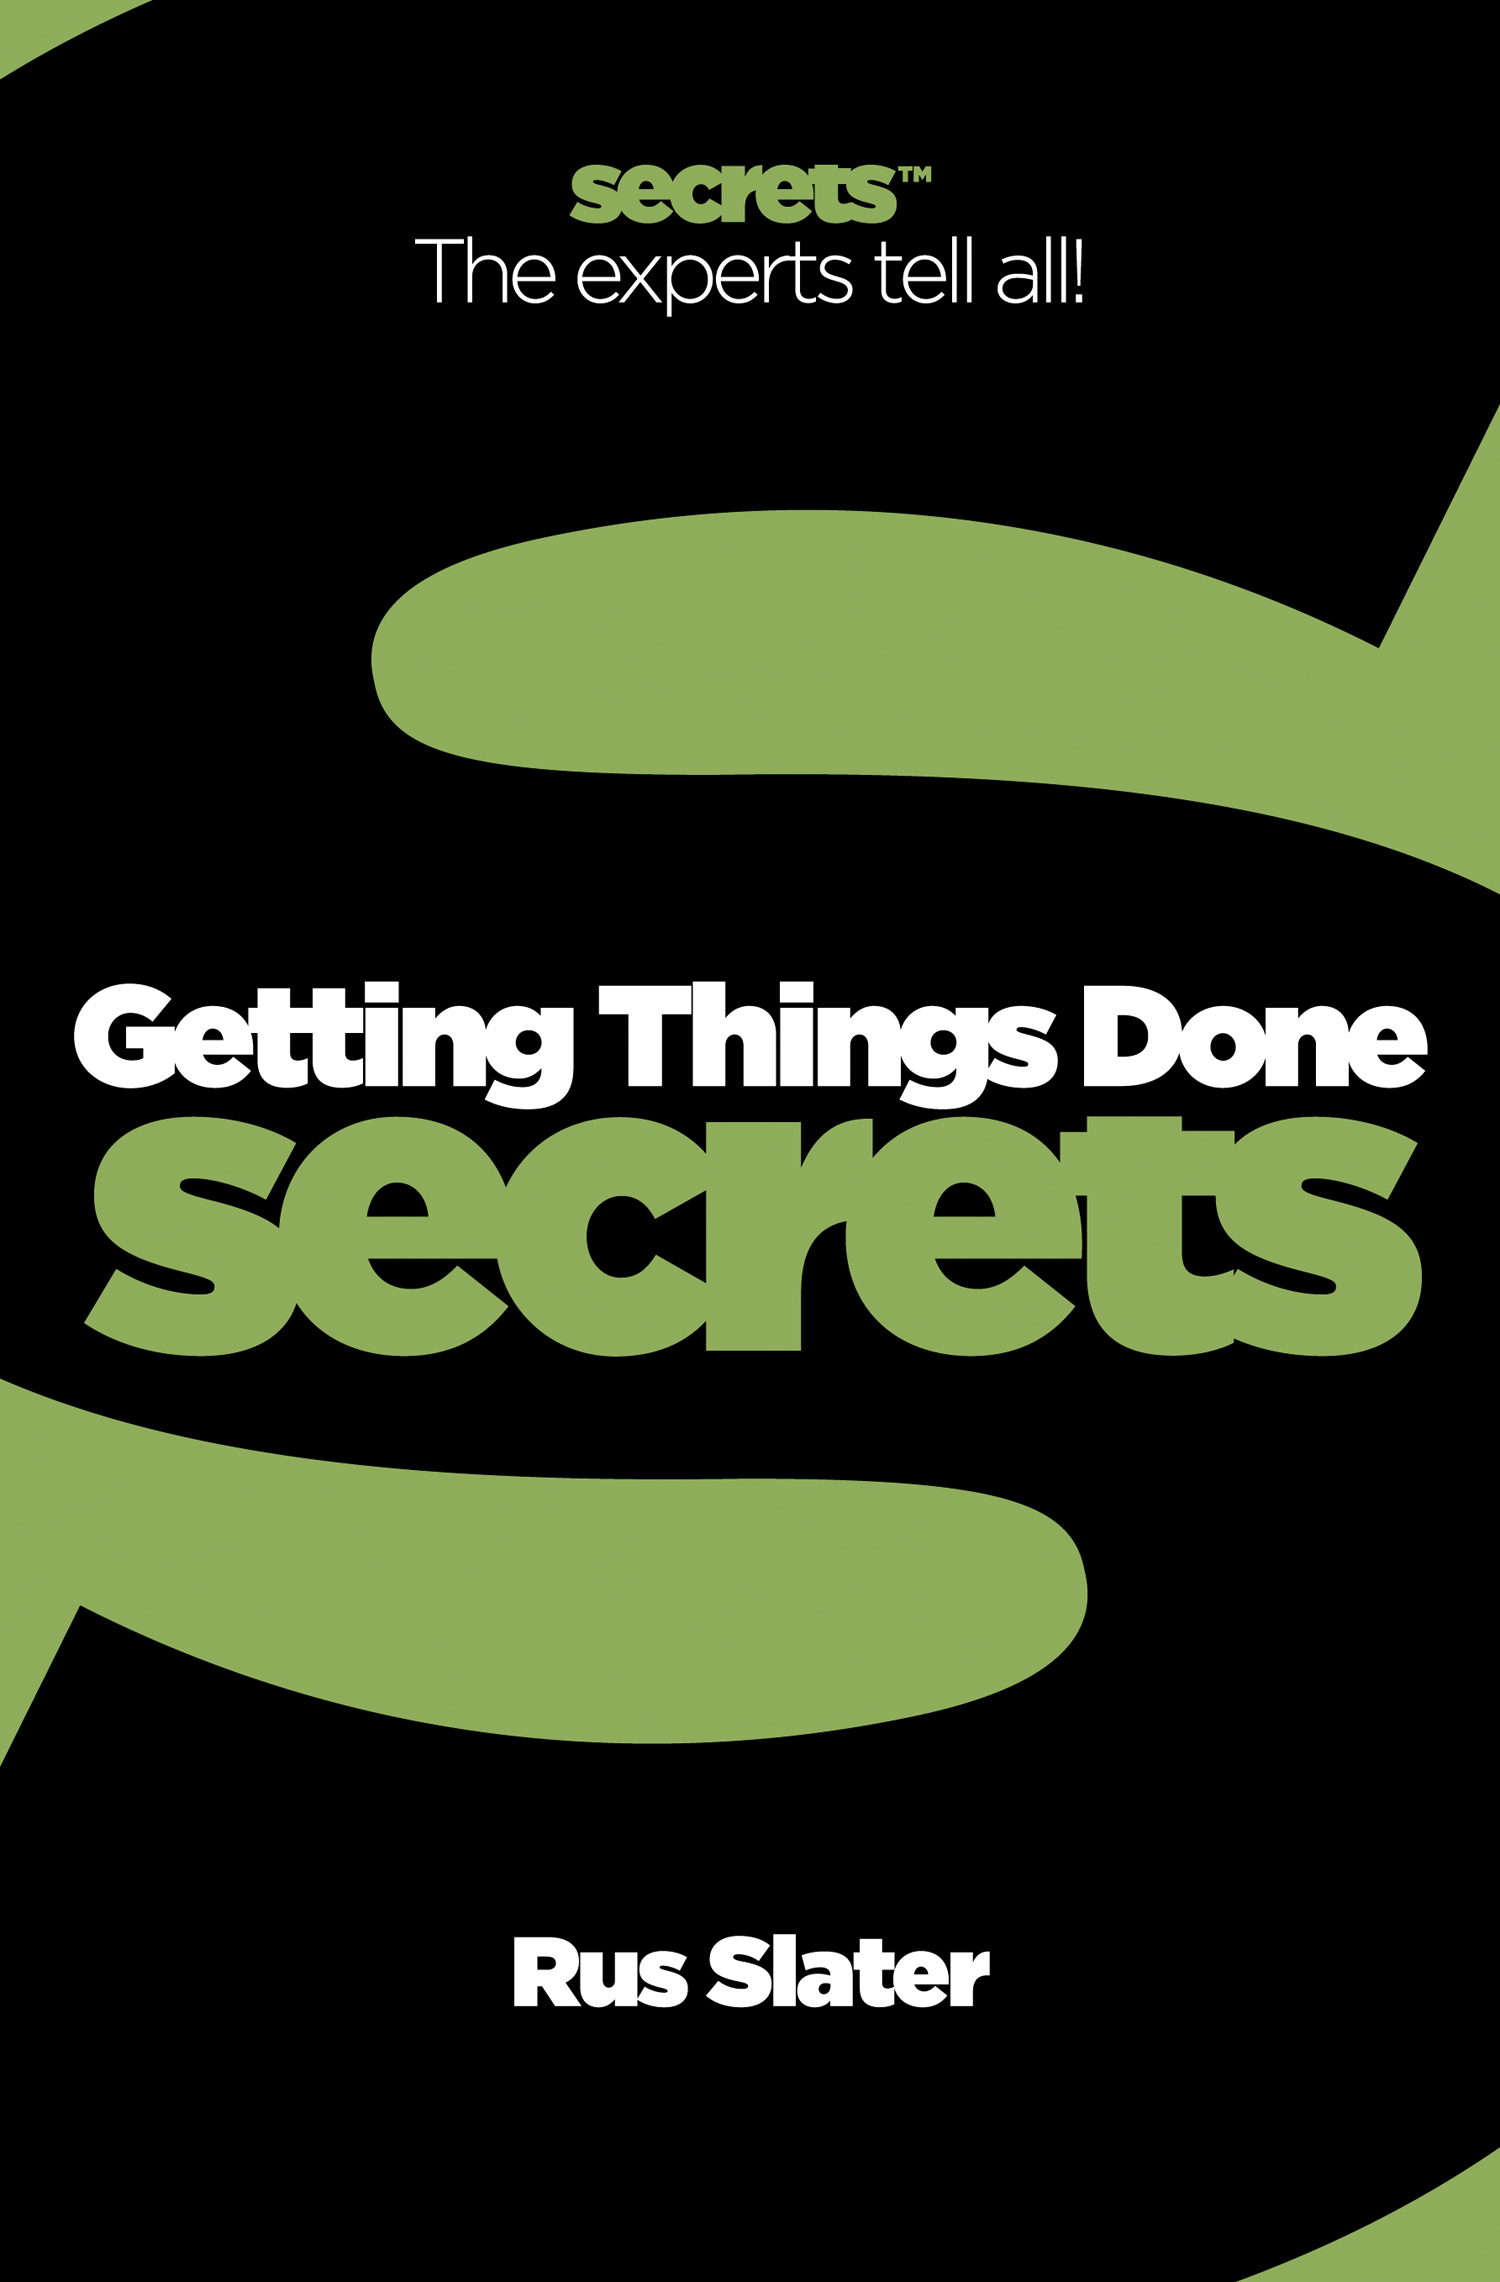 Getting Things Done (Collins Business Secrets) By: Rus Slater